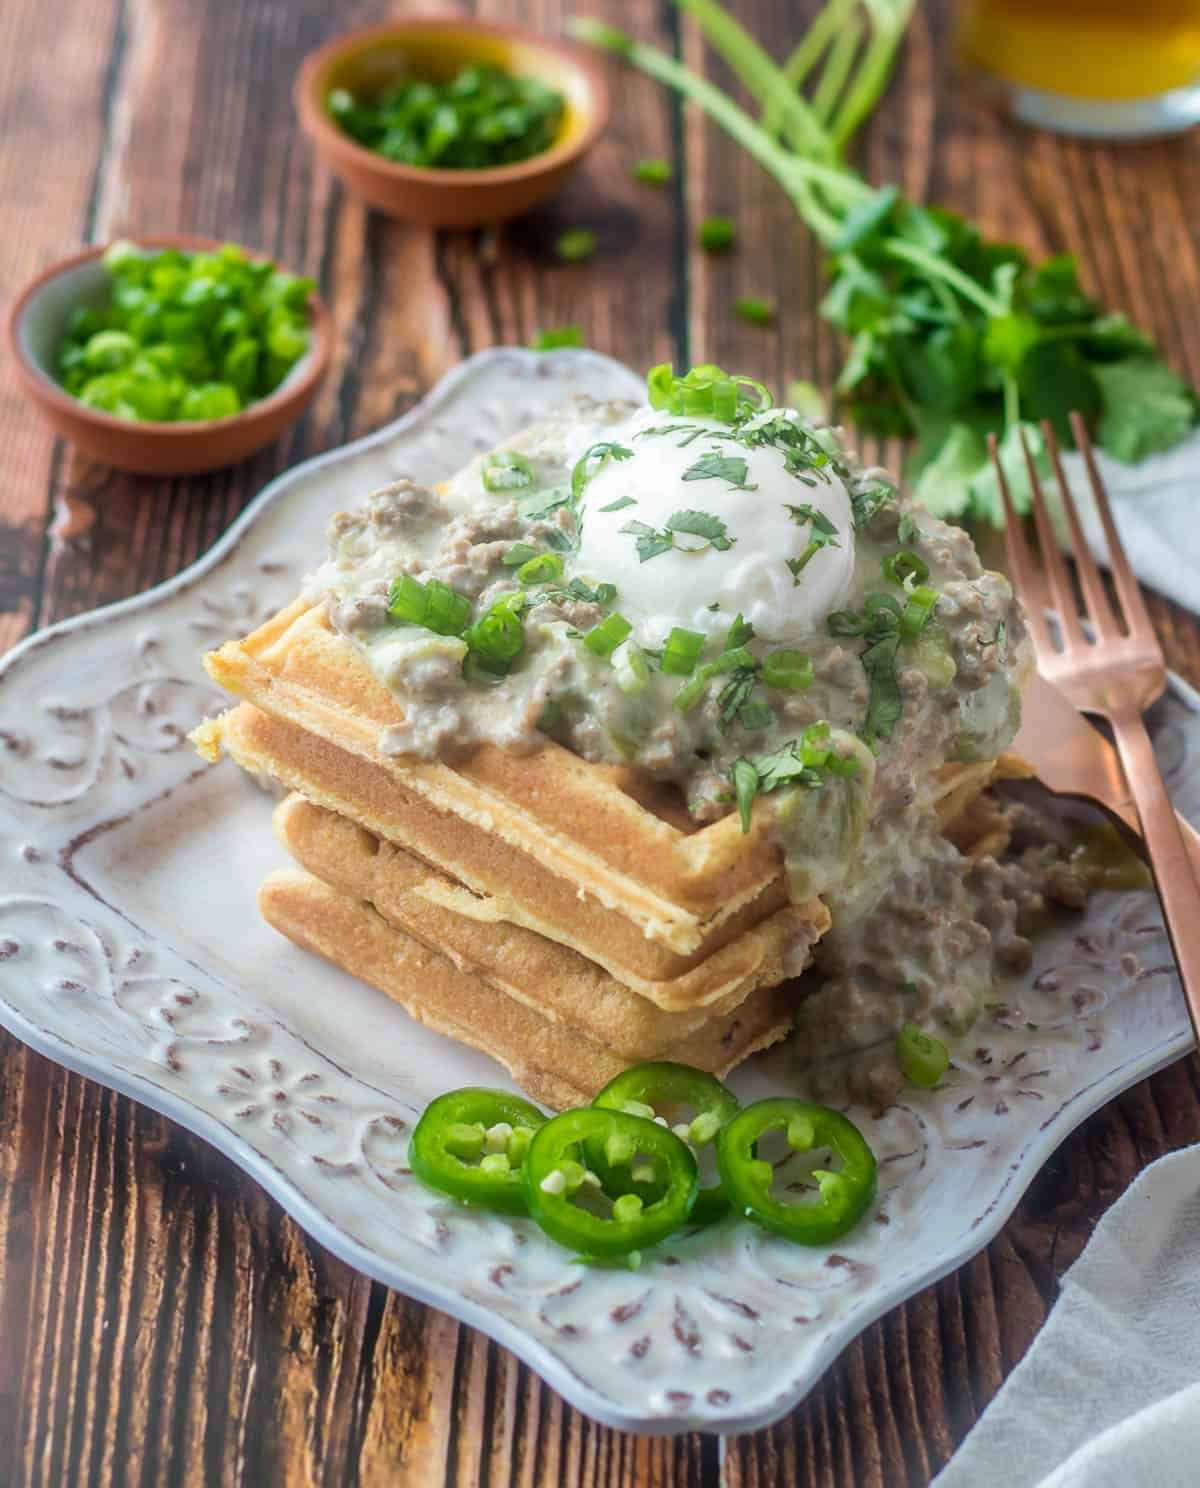 4 cornmeal waffles with Hatch green chile and sausage gravy, a poached egg, and chopped scallion and cilantro.